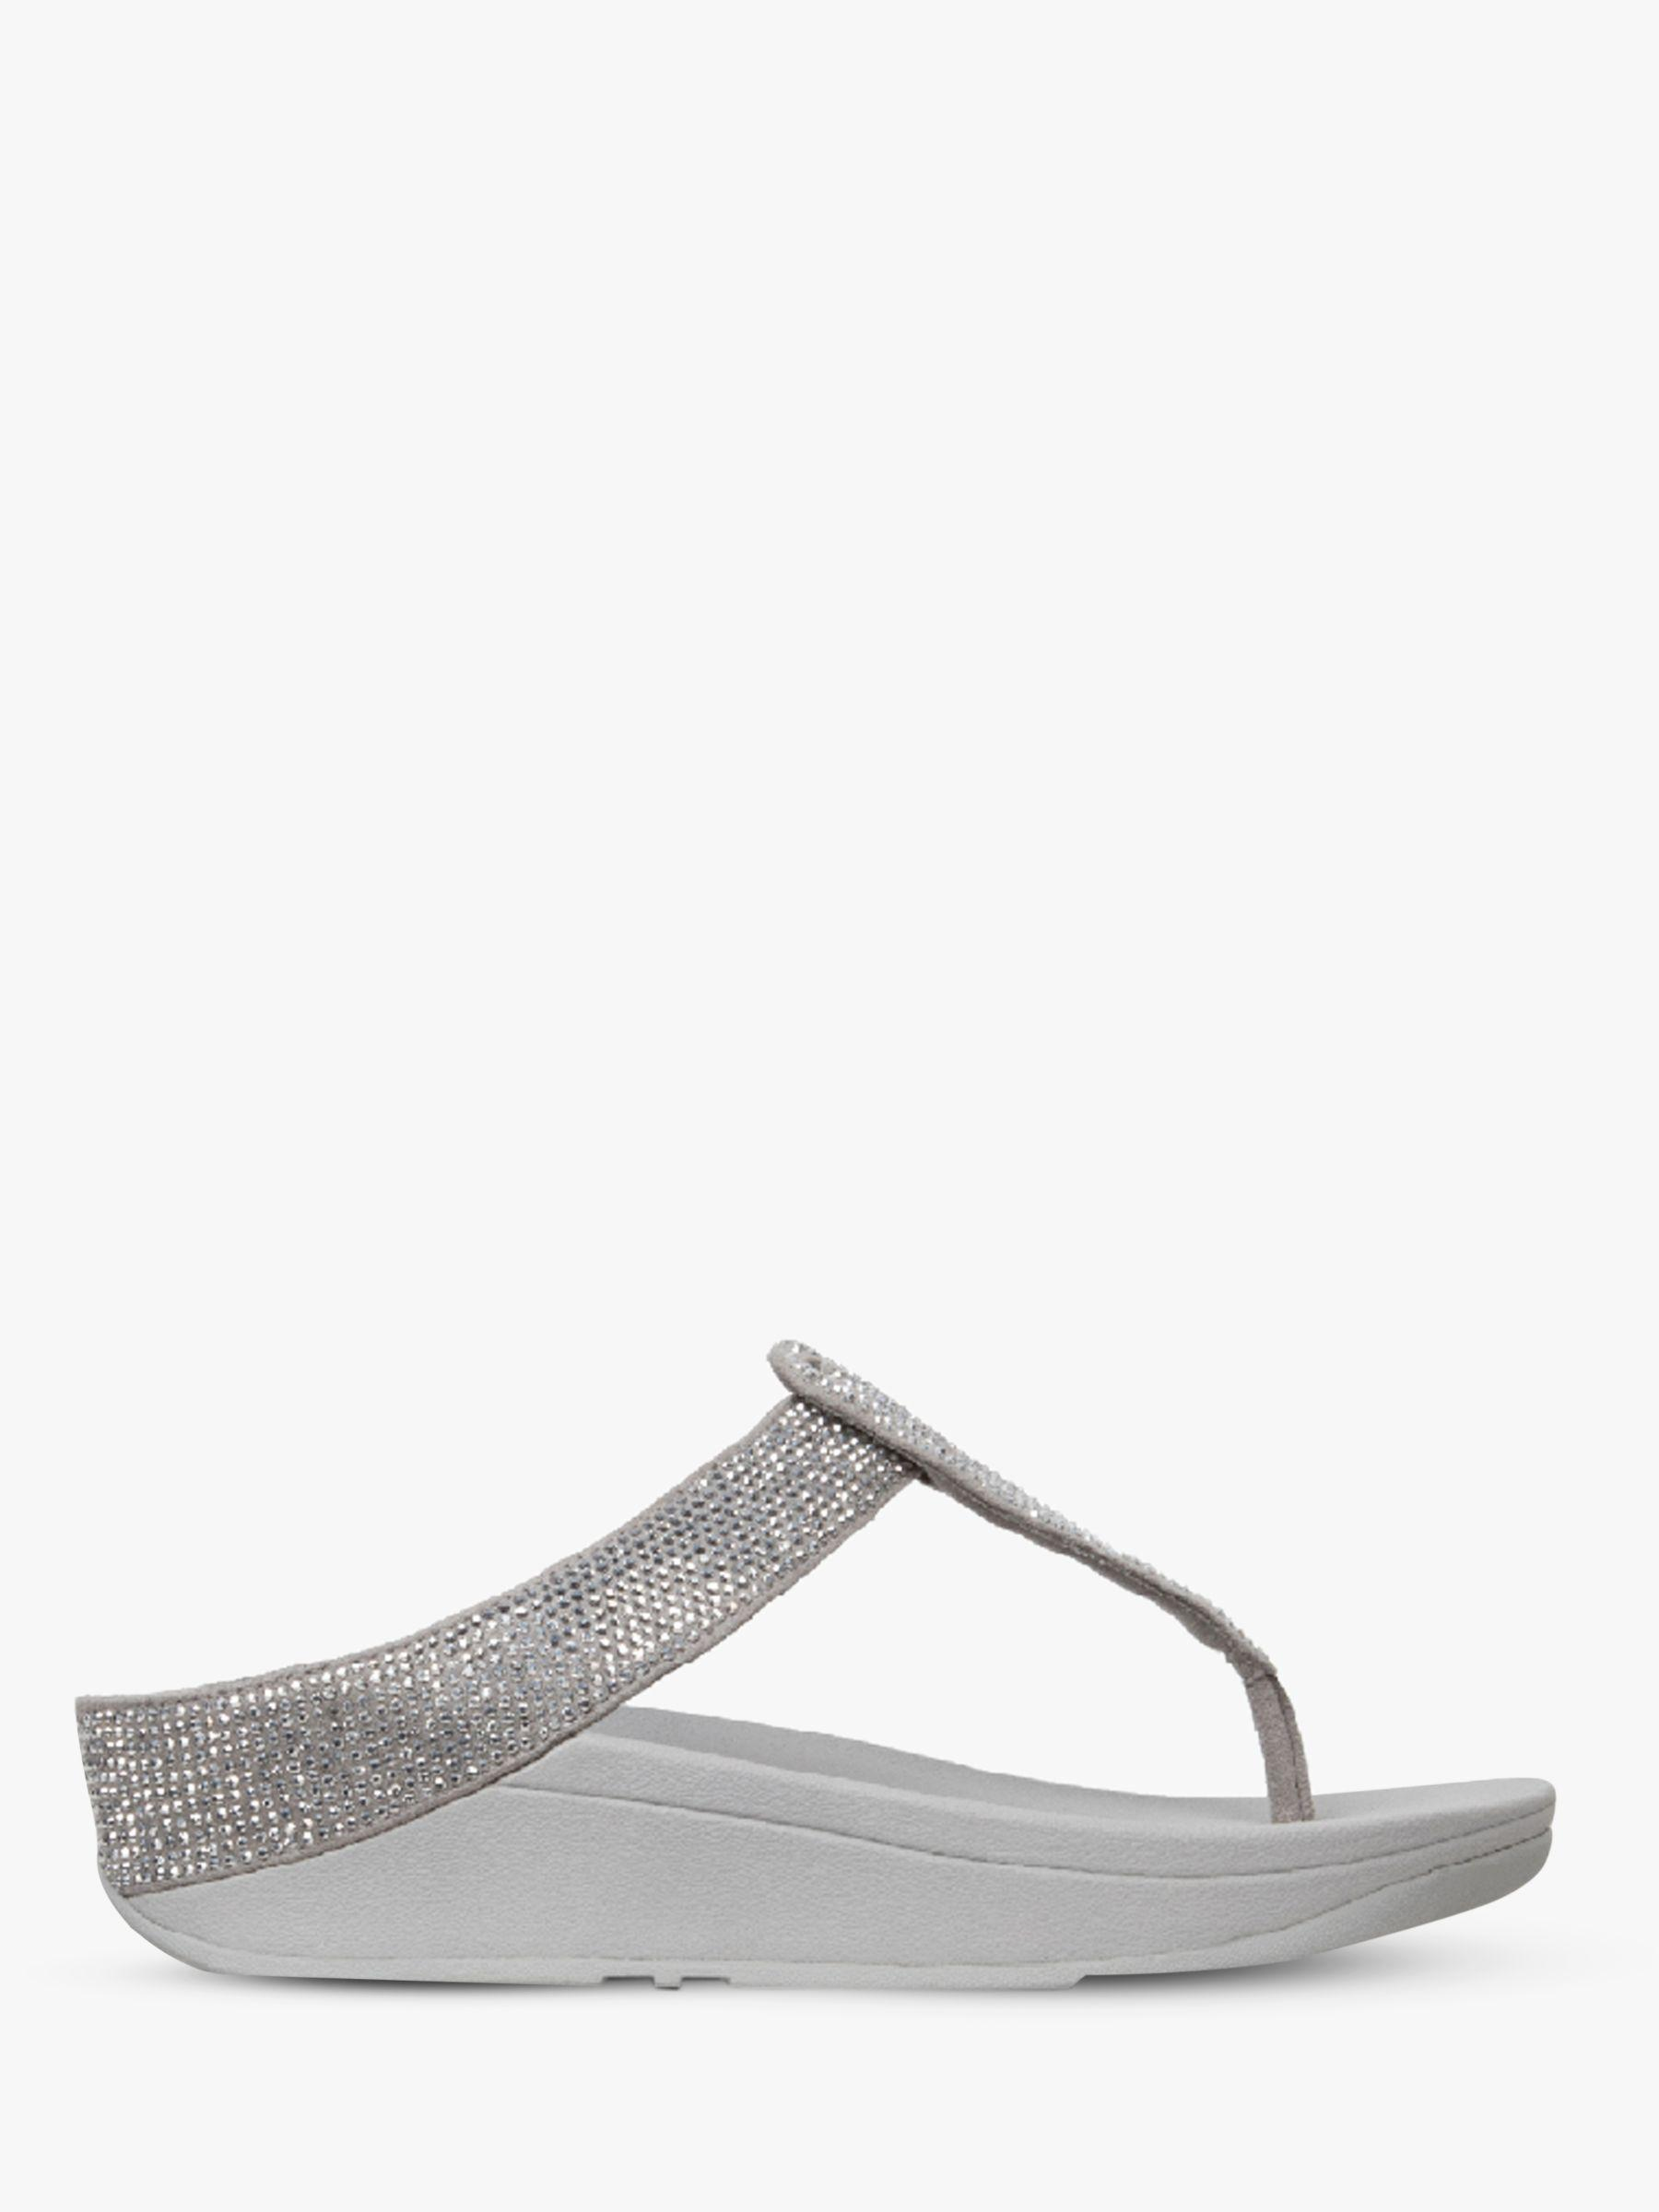 61b6b083e Fitflop. Women s Metallic Isabelle Toe Post Sequin Embellished Sandals. £70  From John Lewis and Partners